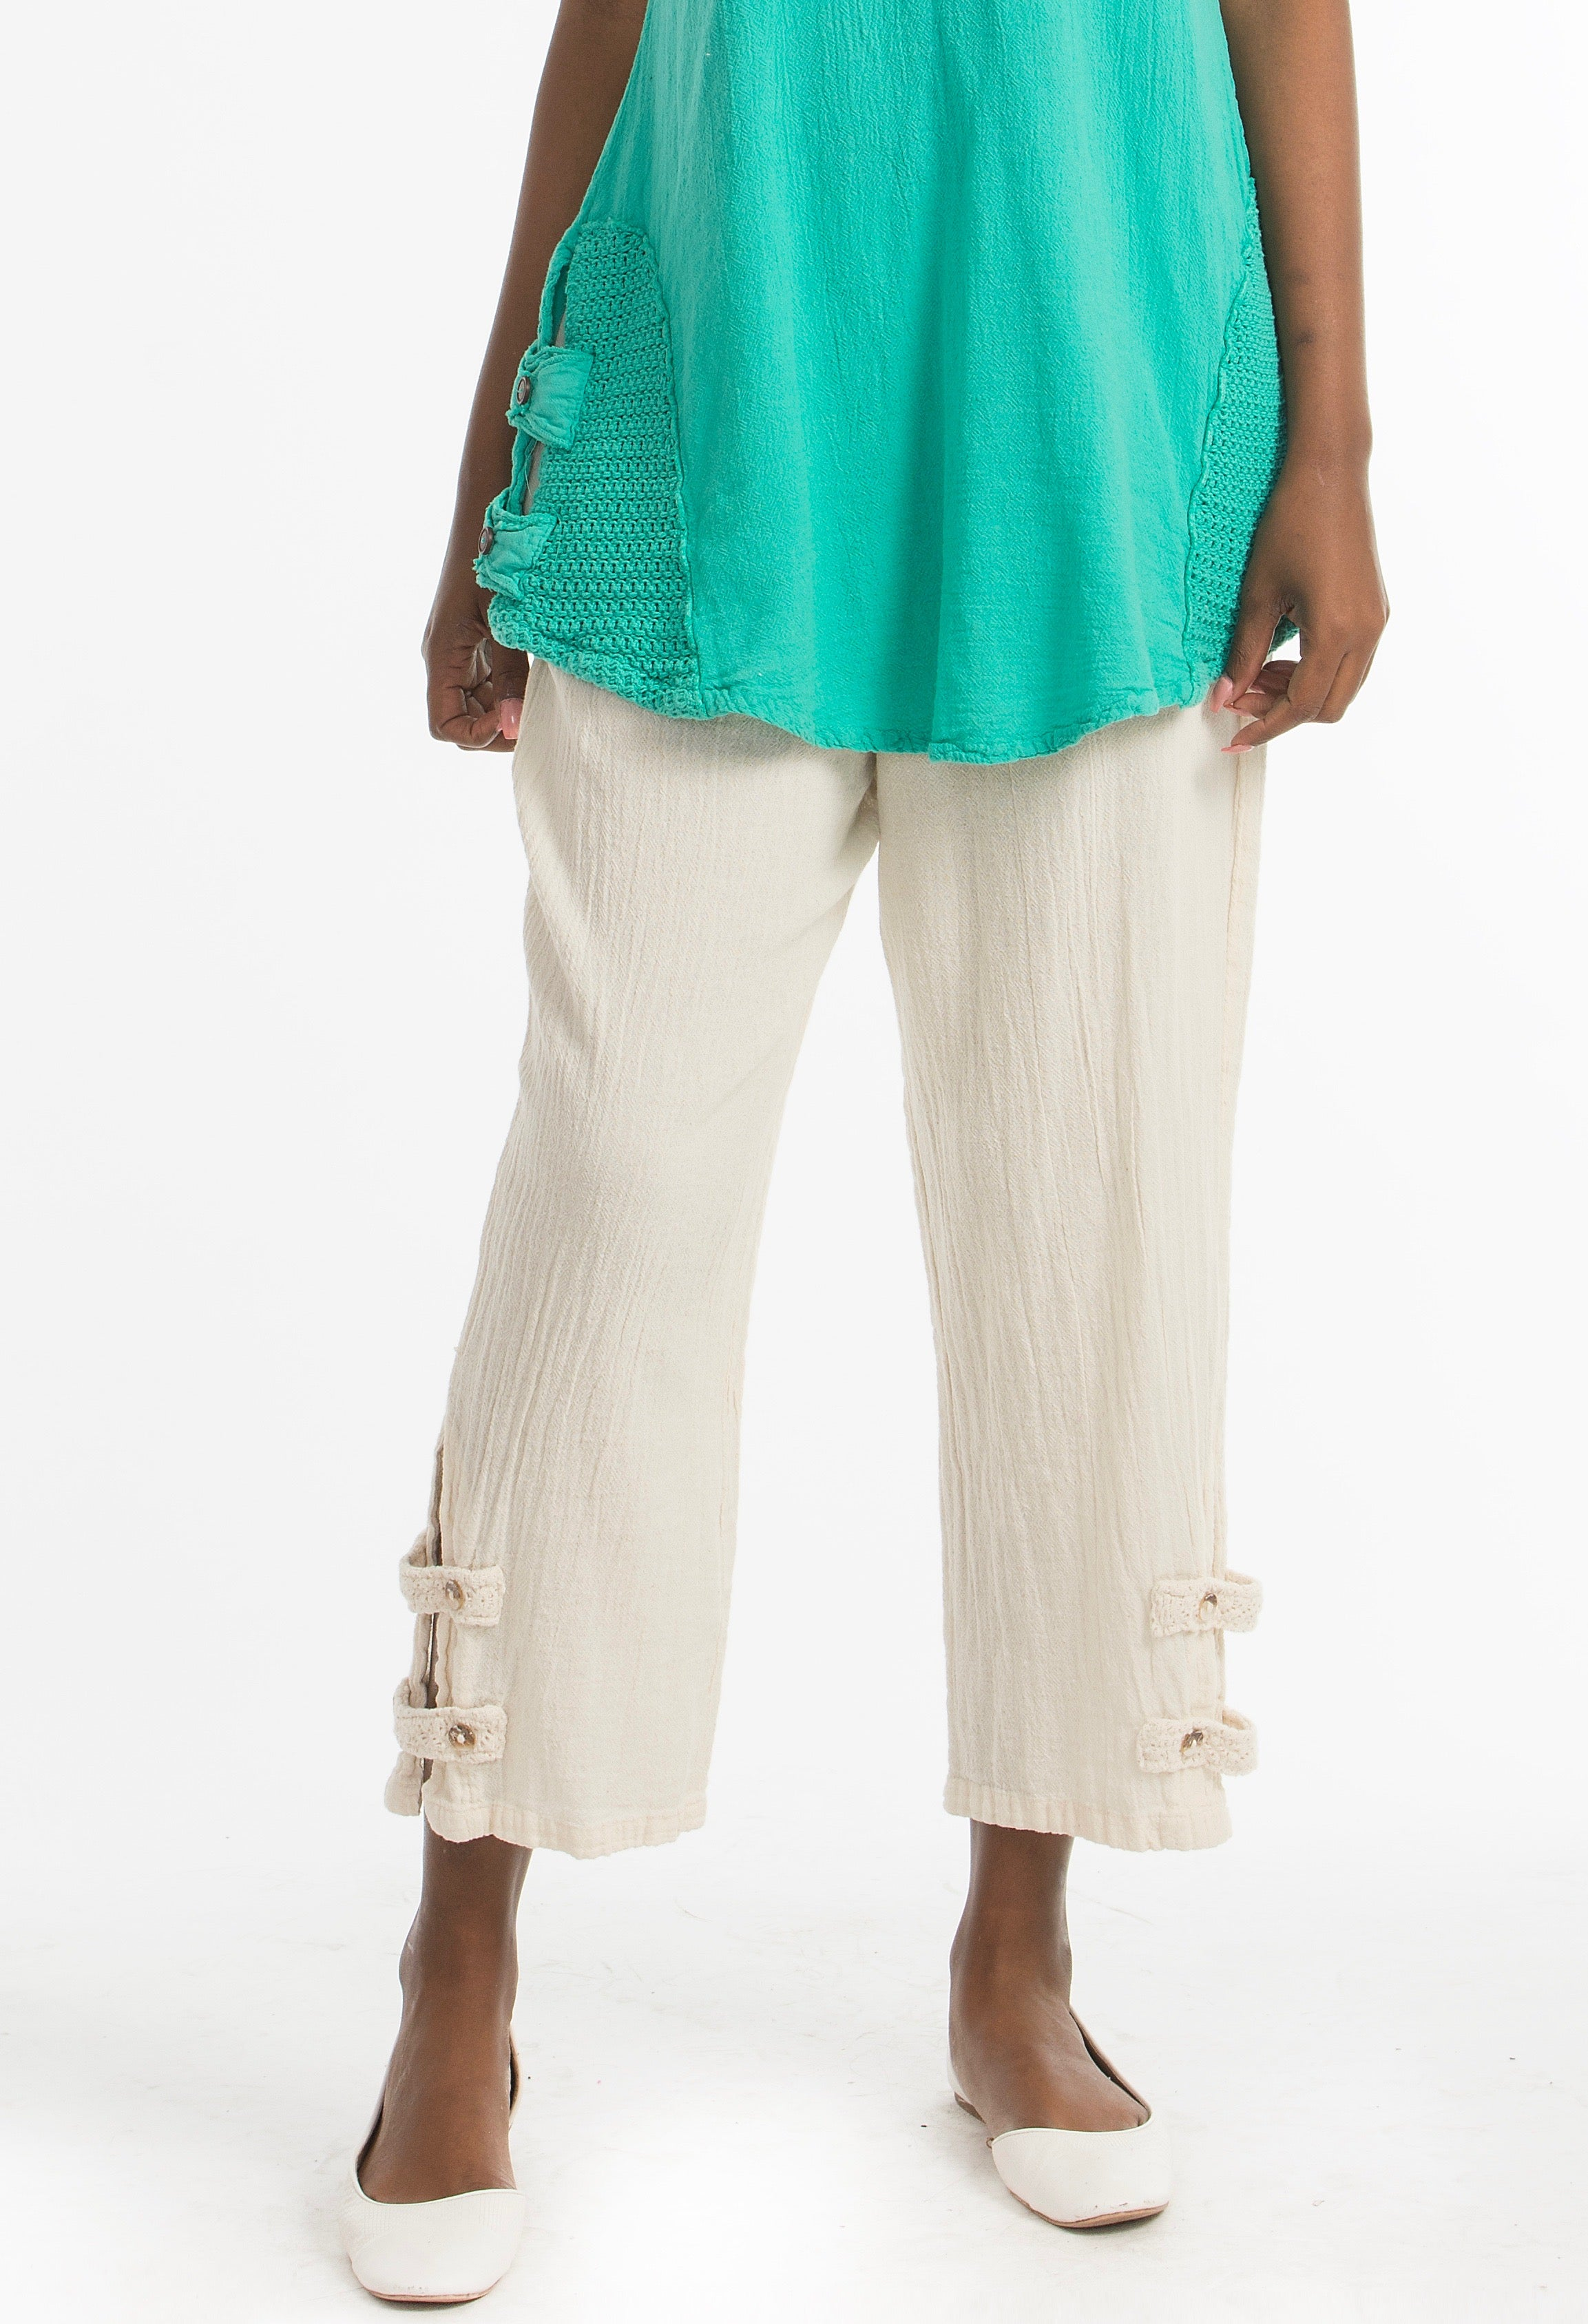 Serena Pant 100% Cotton Gauze Floods with POCKETS!